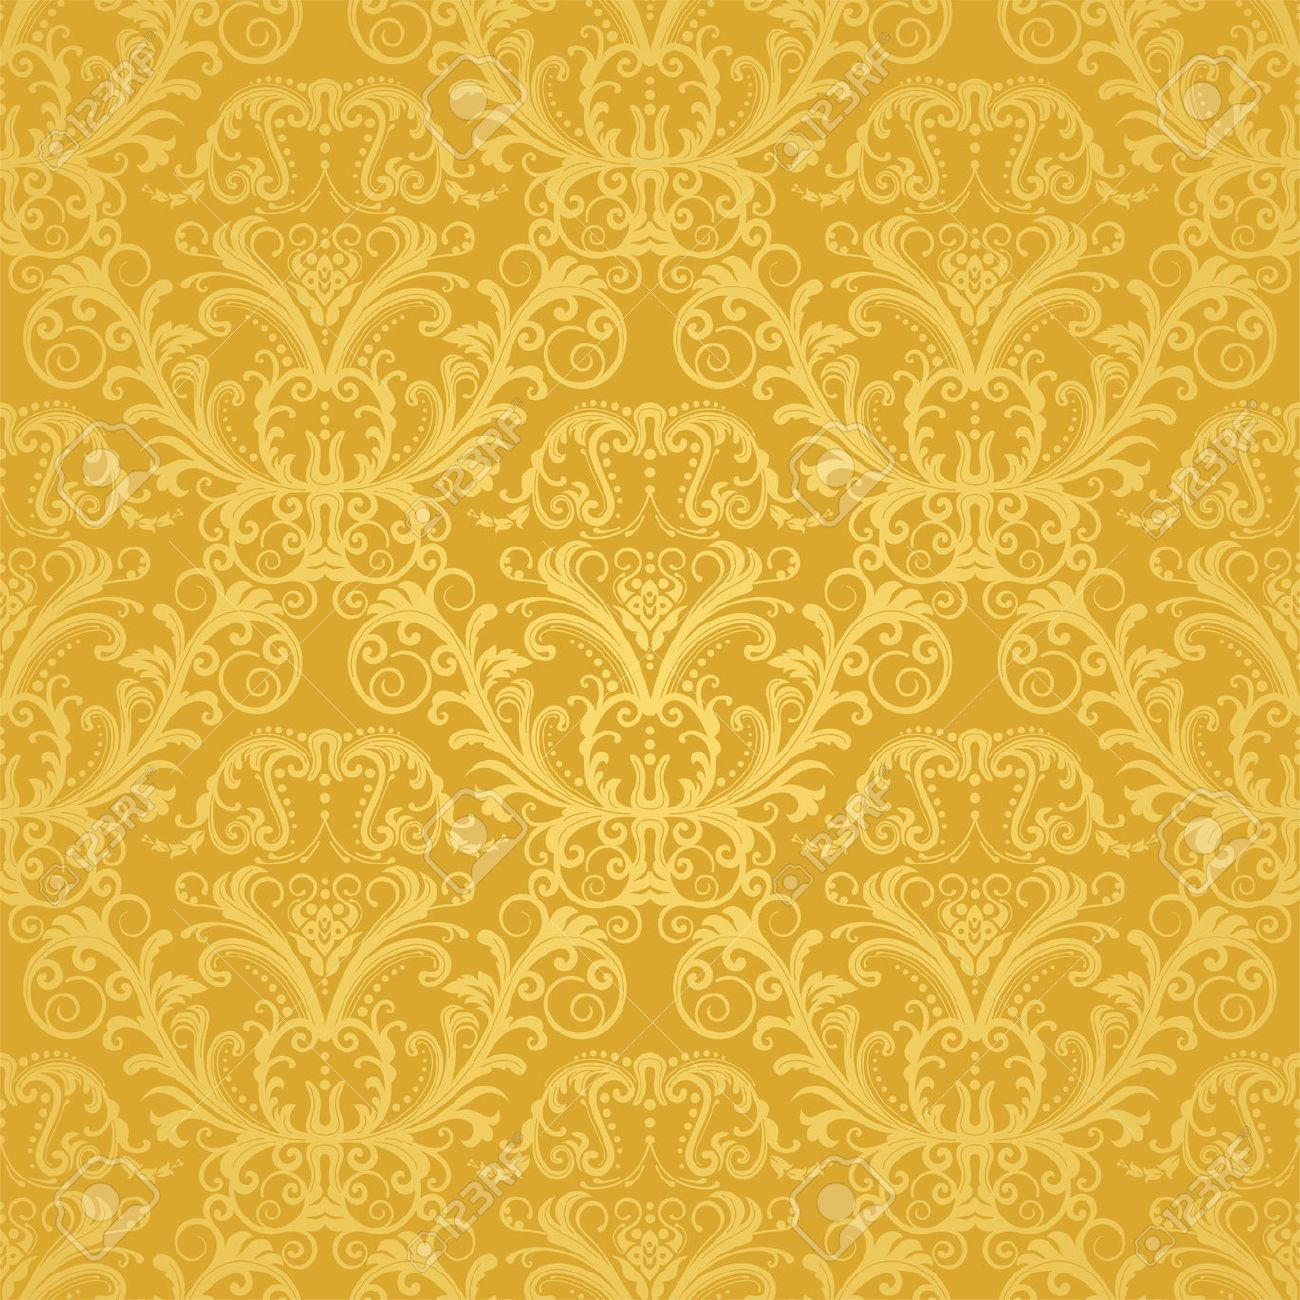 Luxury Seamless Golden Floral Wallpaper Royalty Free Cliparts